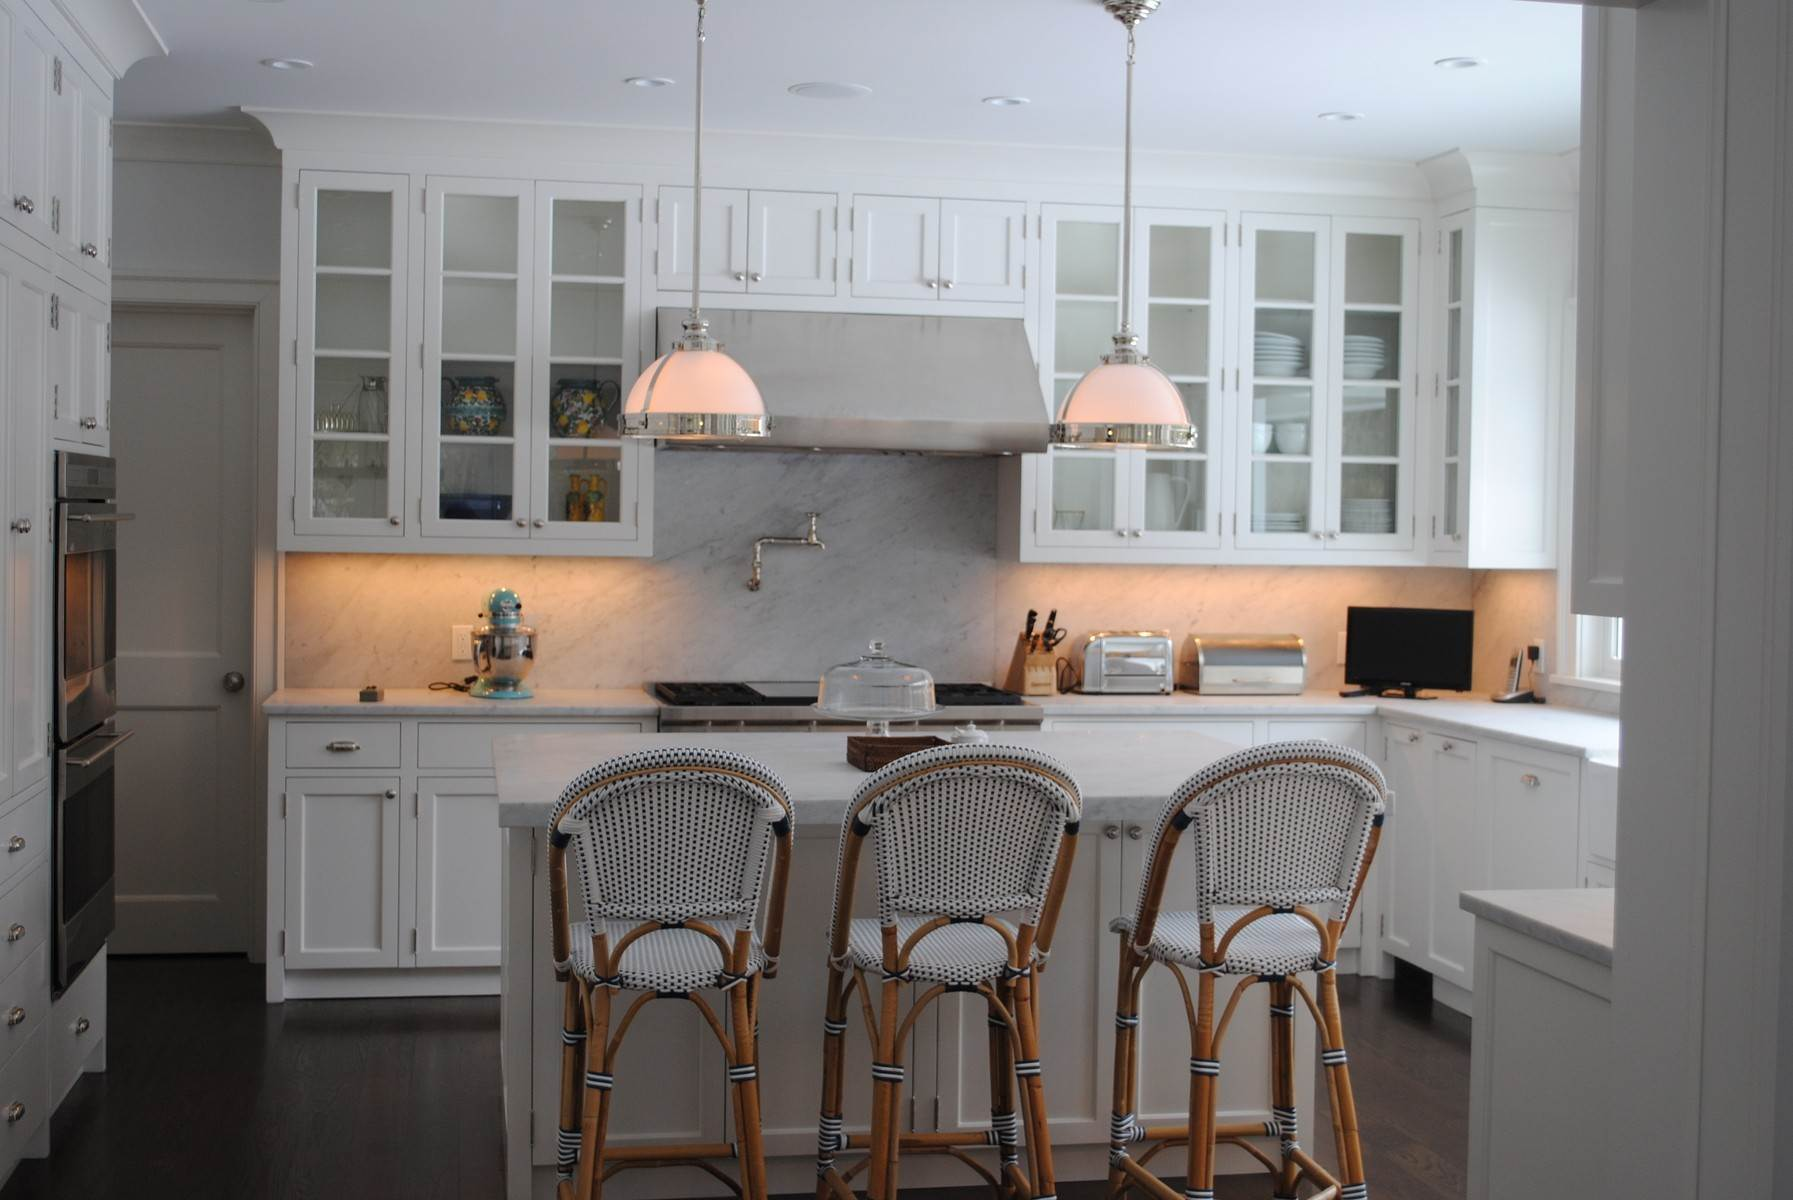 Single Family Home at East Hampton Village Area, 5 Bd, Pool East Hampton, NY 11937